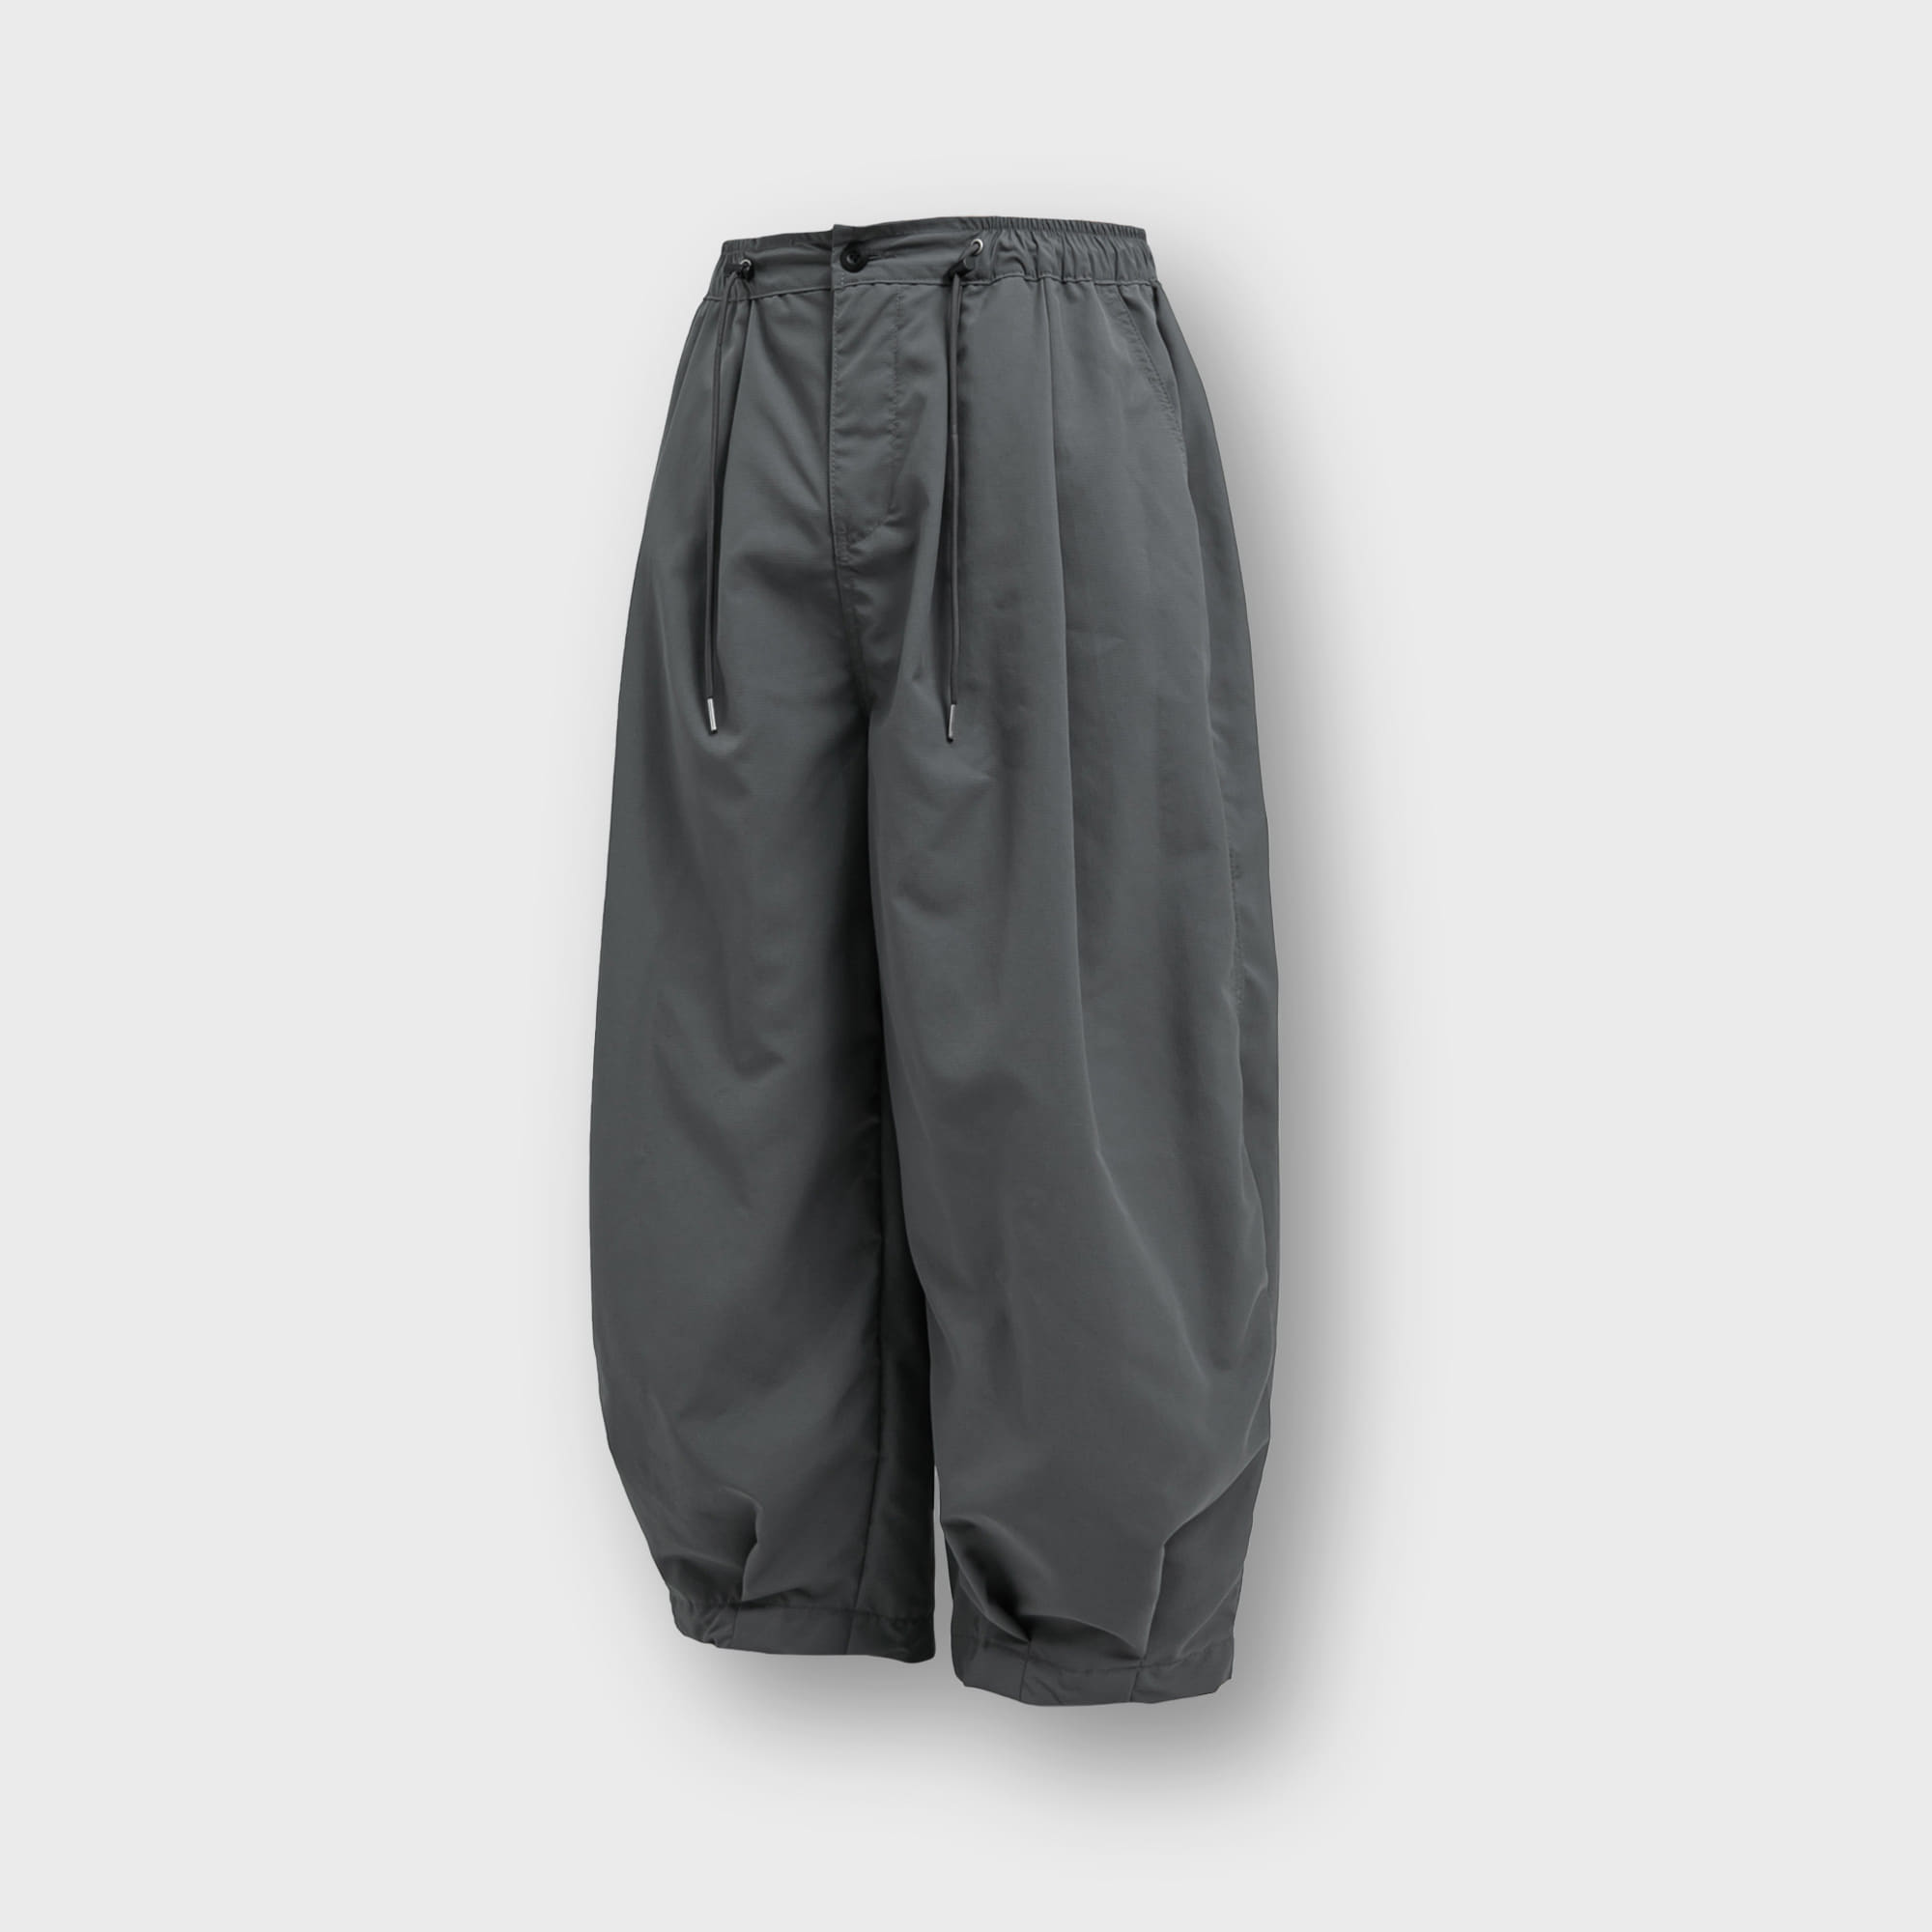 [AG] Rib Nylon Vijo Balloon Pants - Grey